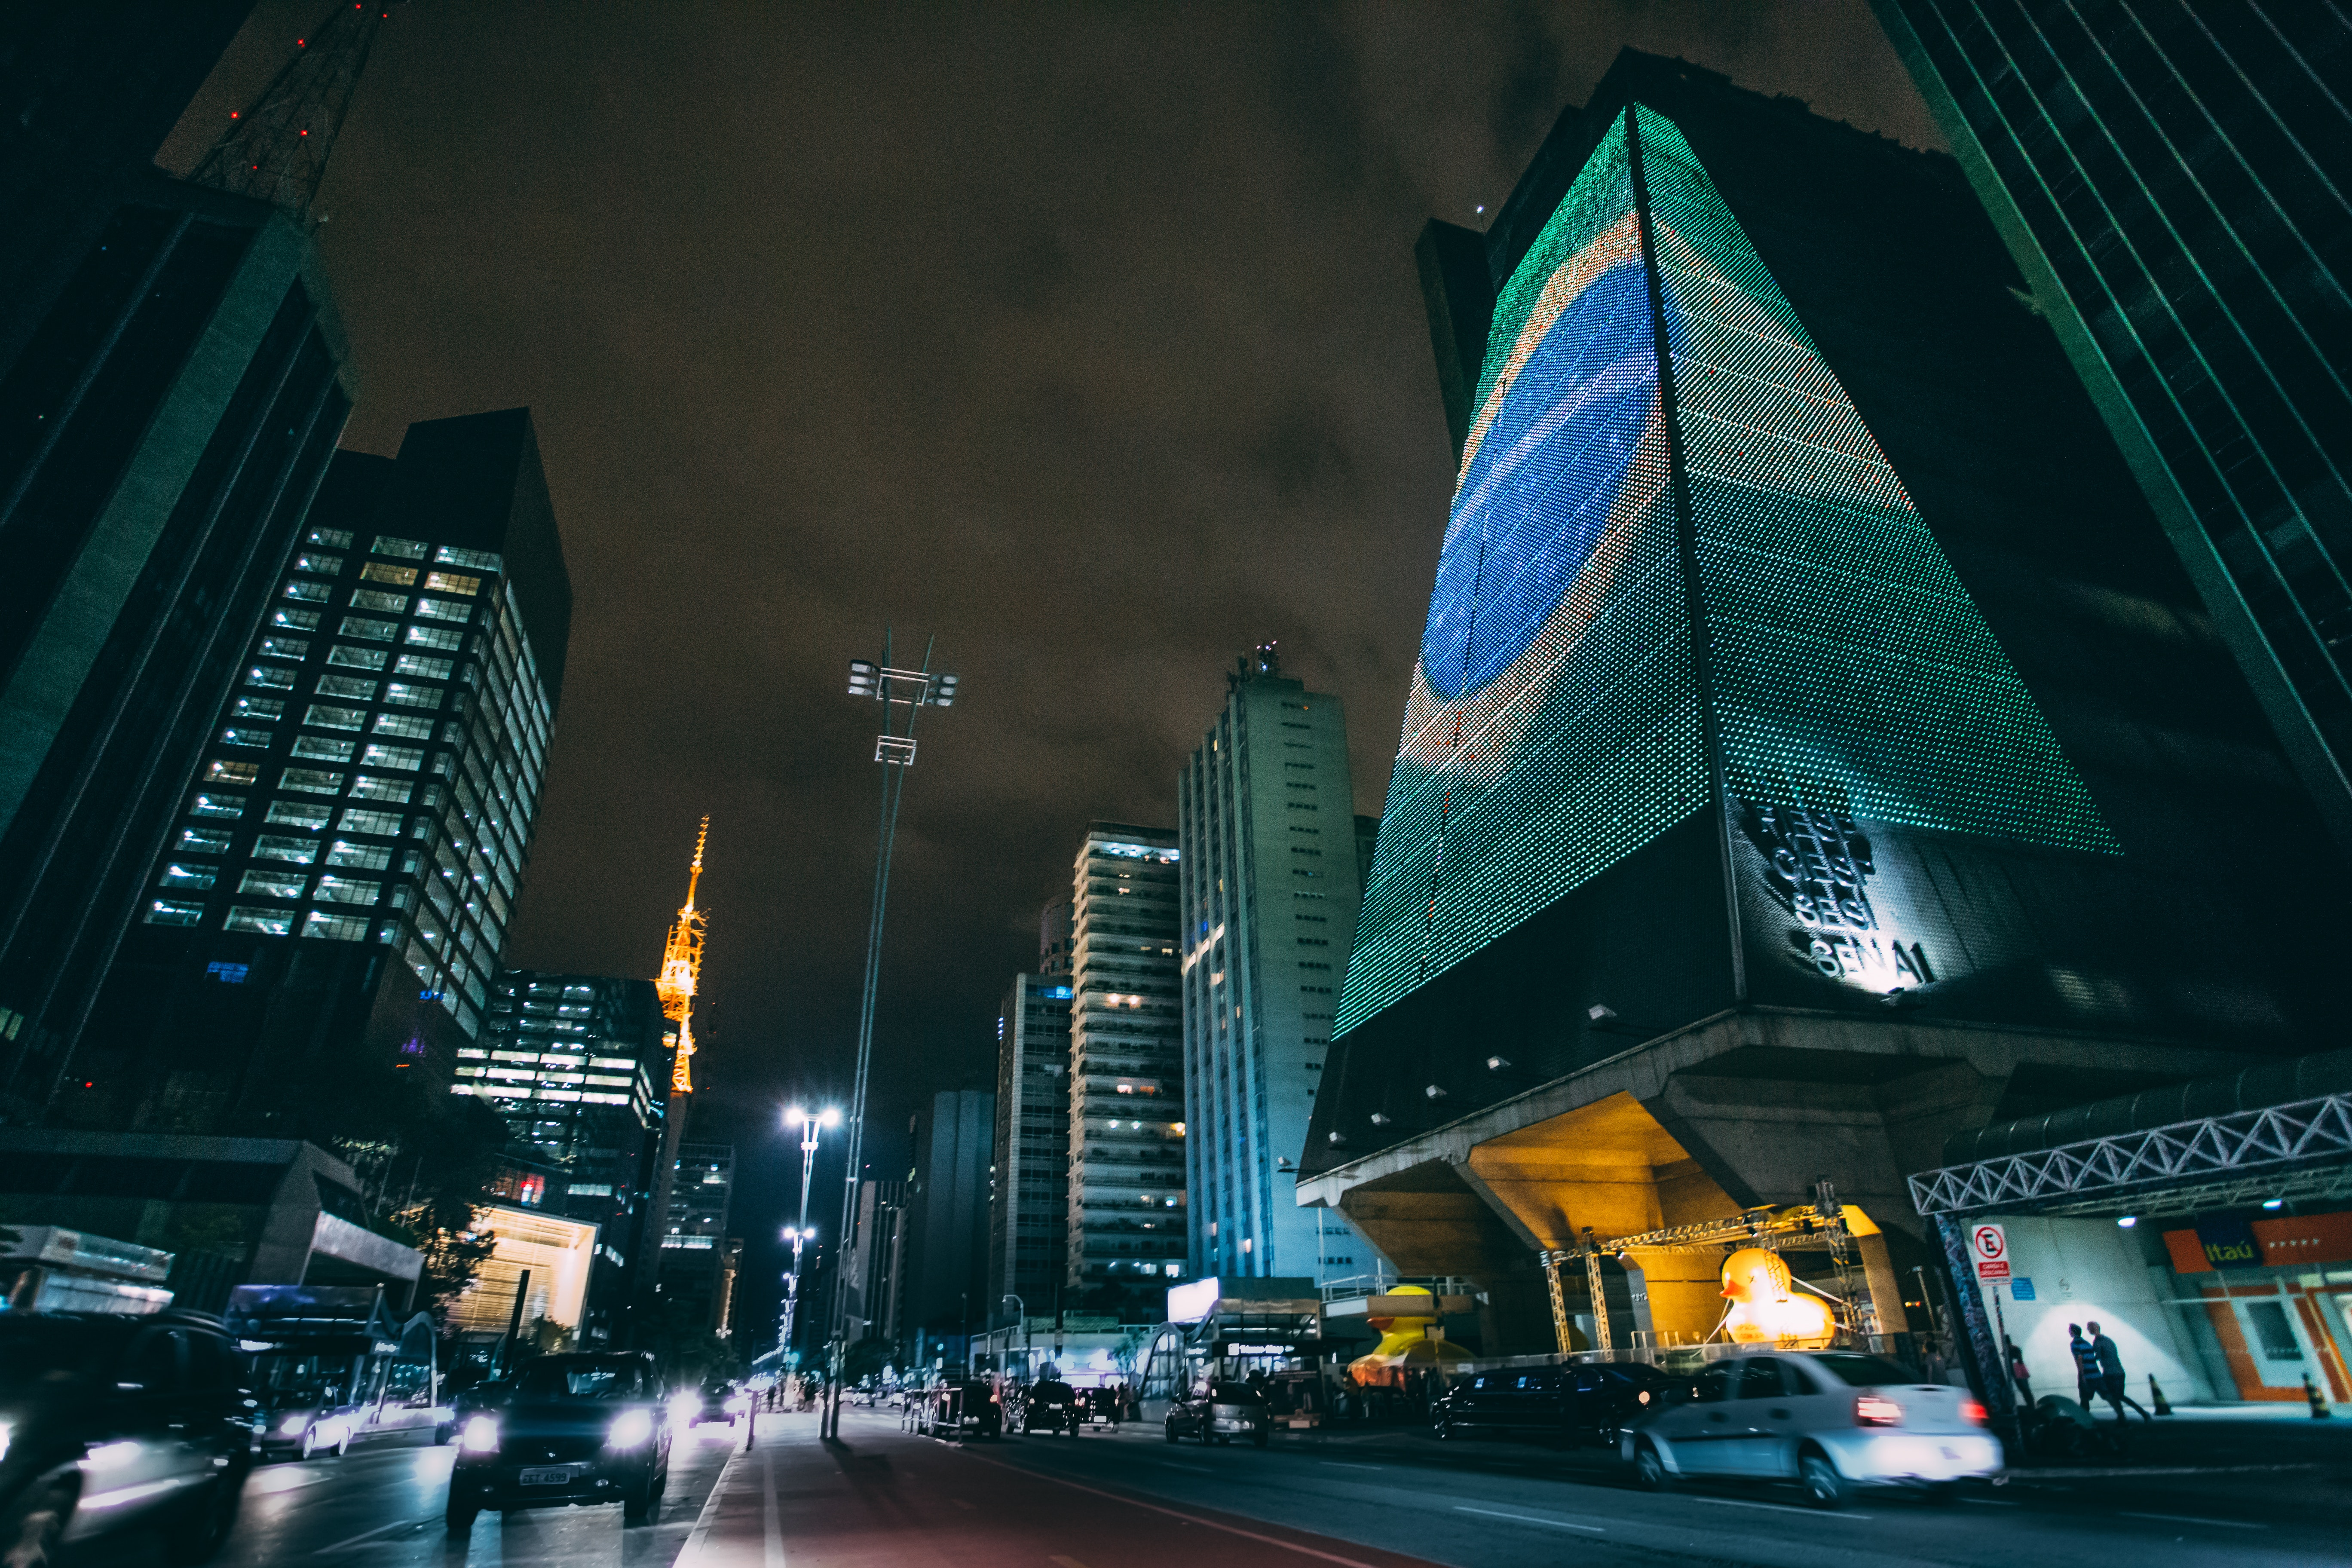 Cars Traveling on Road Between Buildings during Nighttime, Architecture, Night, Urban scene, Urban, HQ Photo